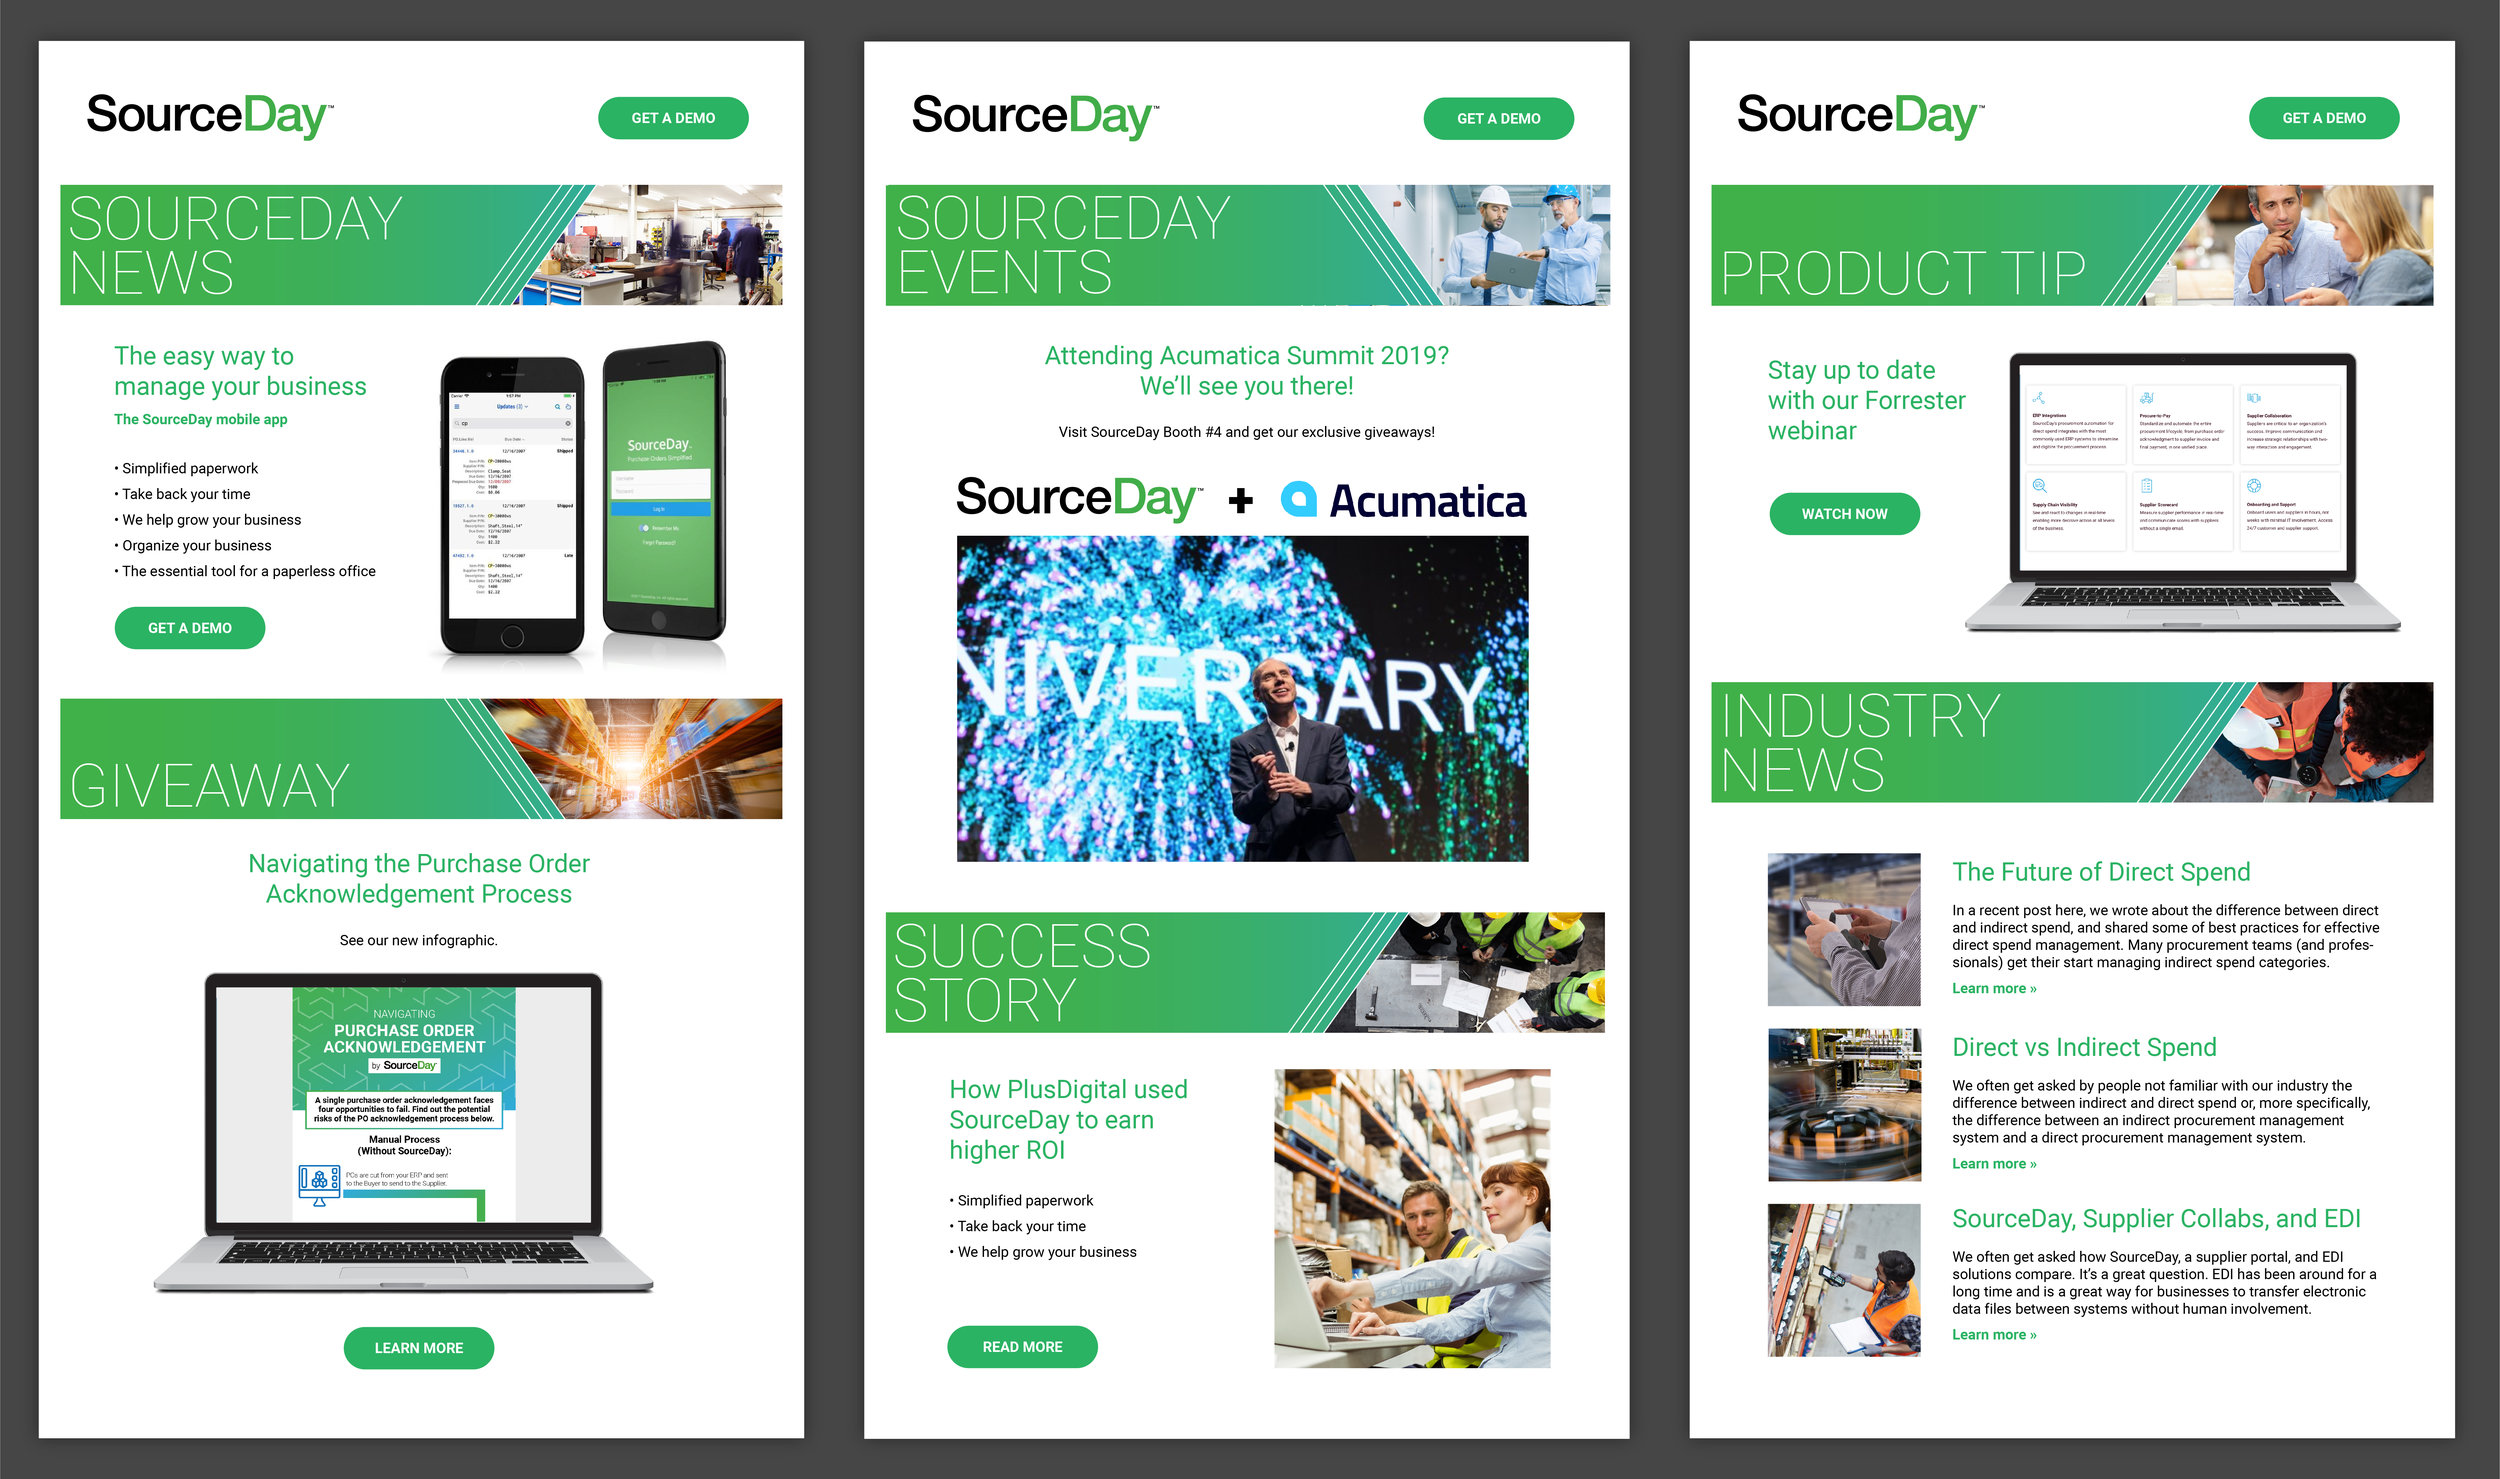 Email banners created for SourceDay